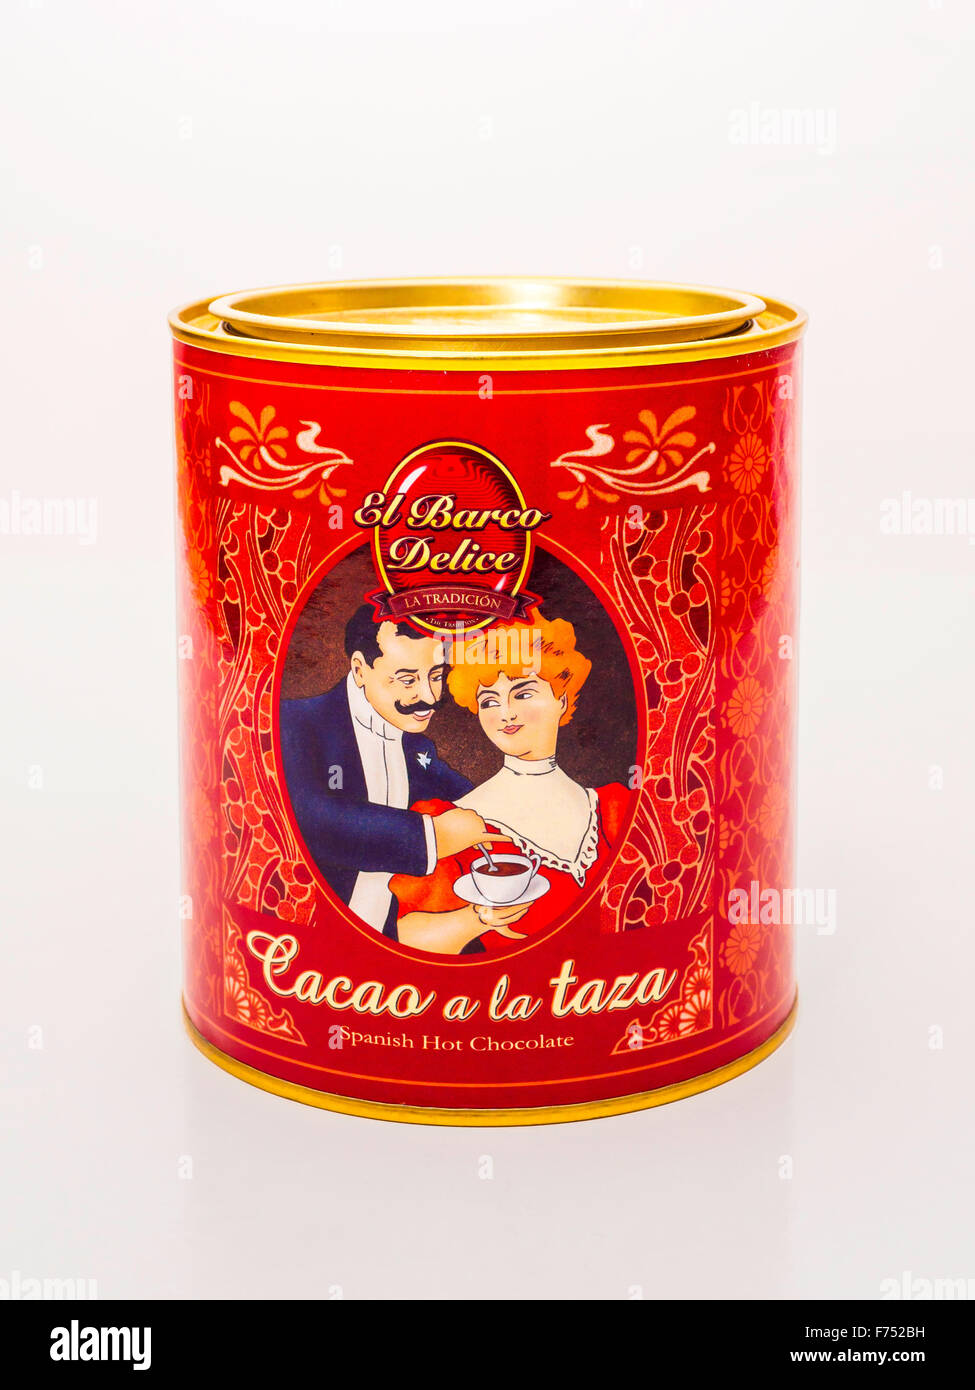 Packaging and Edwardian style tin of El Barco Delice Cacao a la Taza Spanish Hot Chocolate Stock Photo